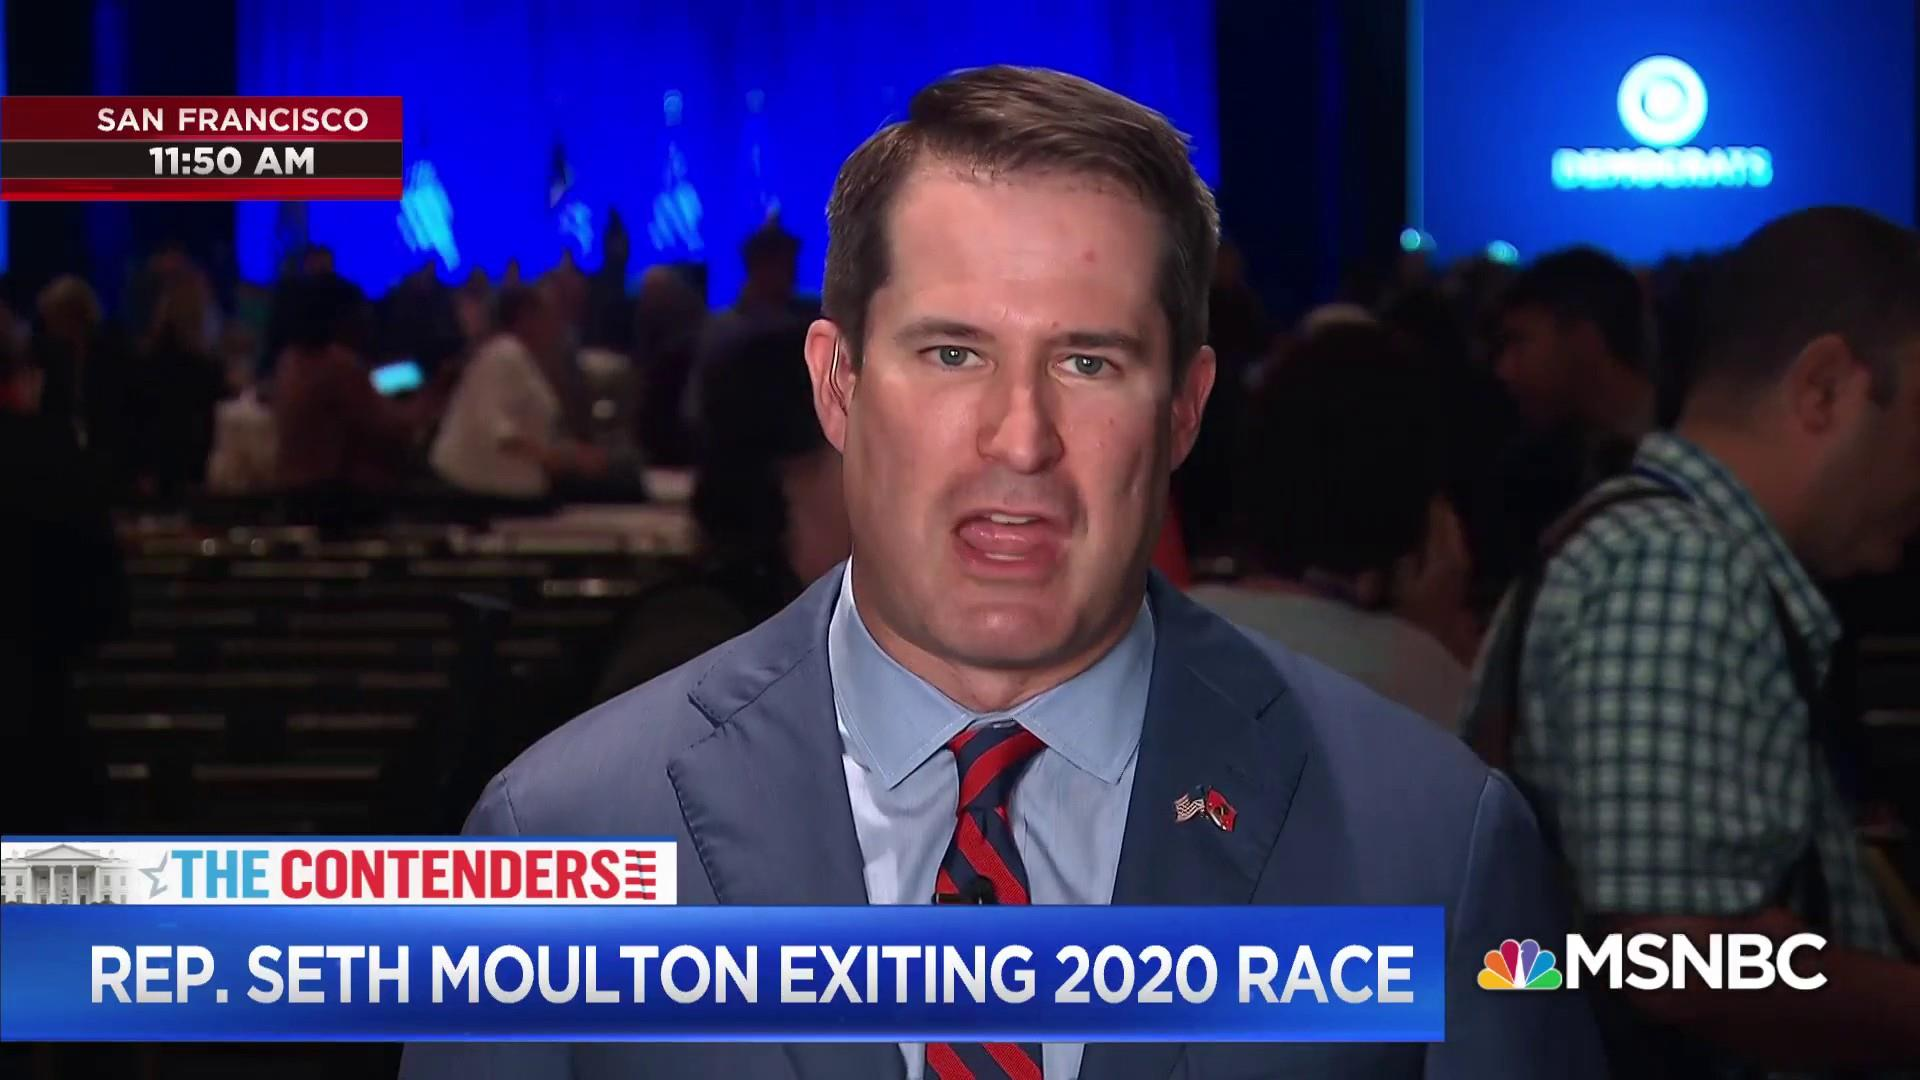 Rep. Moulton discusses his decision to drop out of the 2020 race